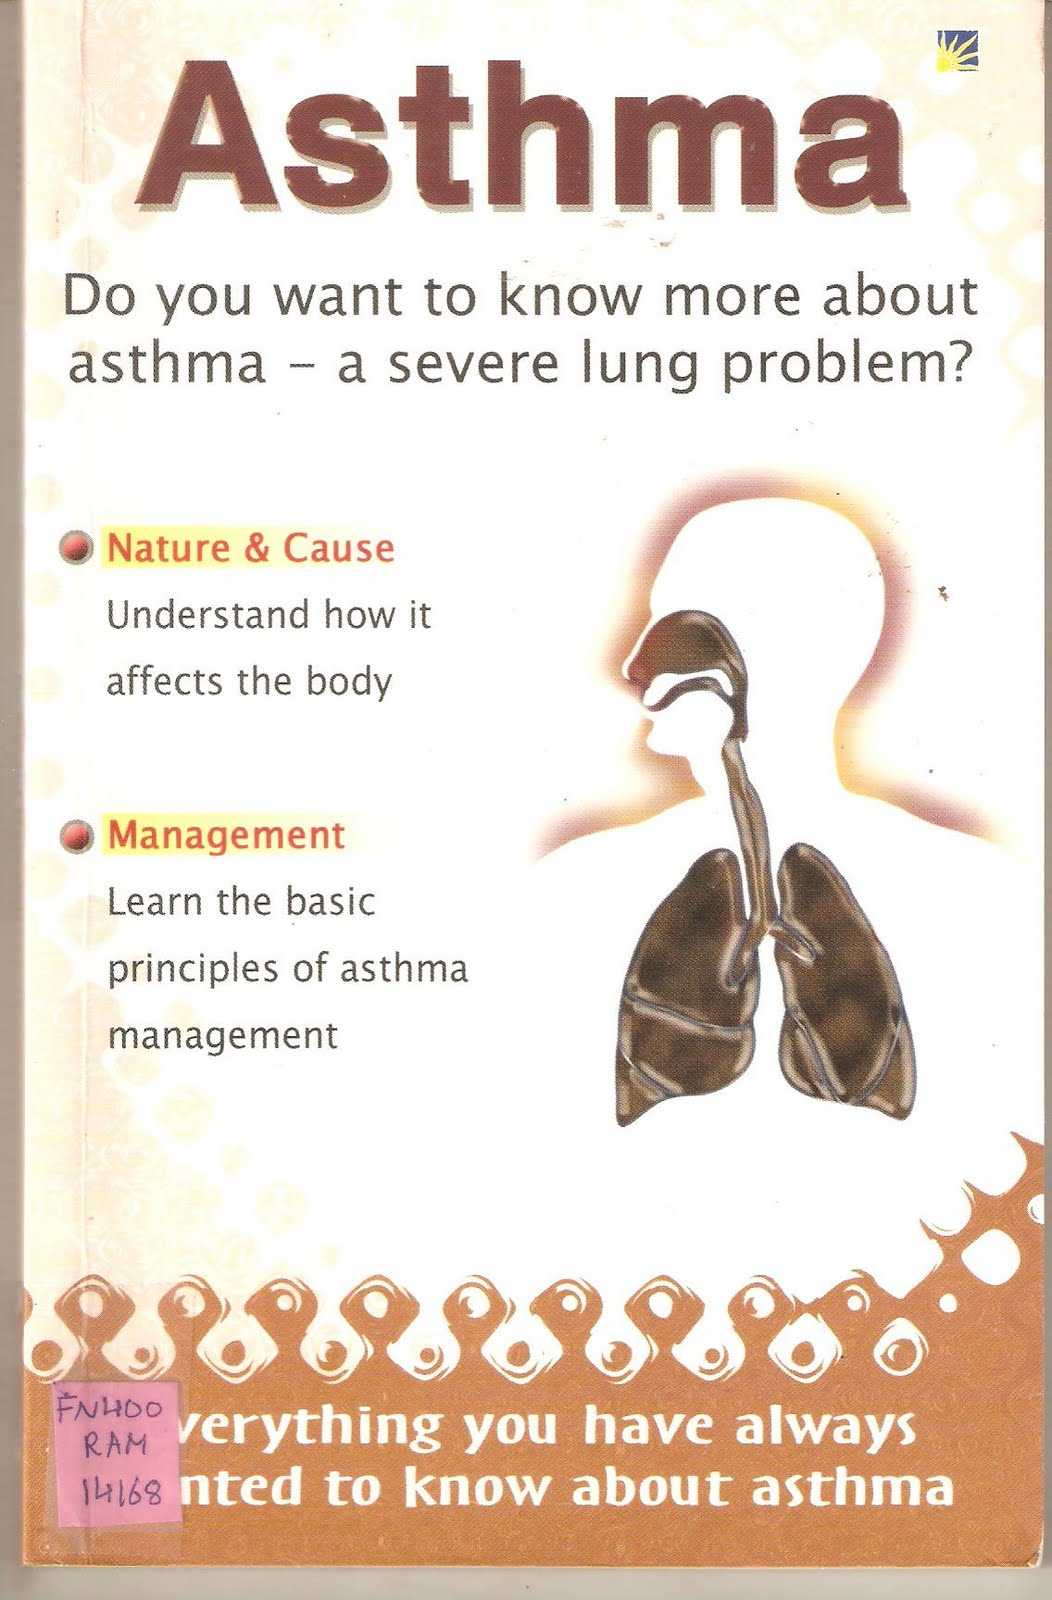 asthma information Asthma is a common condition caused by narrowing of the small air passages in the lungs for more information kids health info fact sheet: asthma.